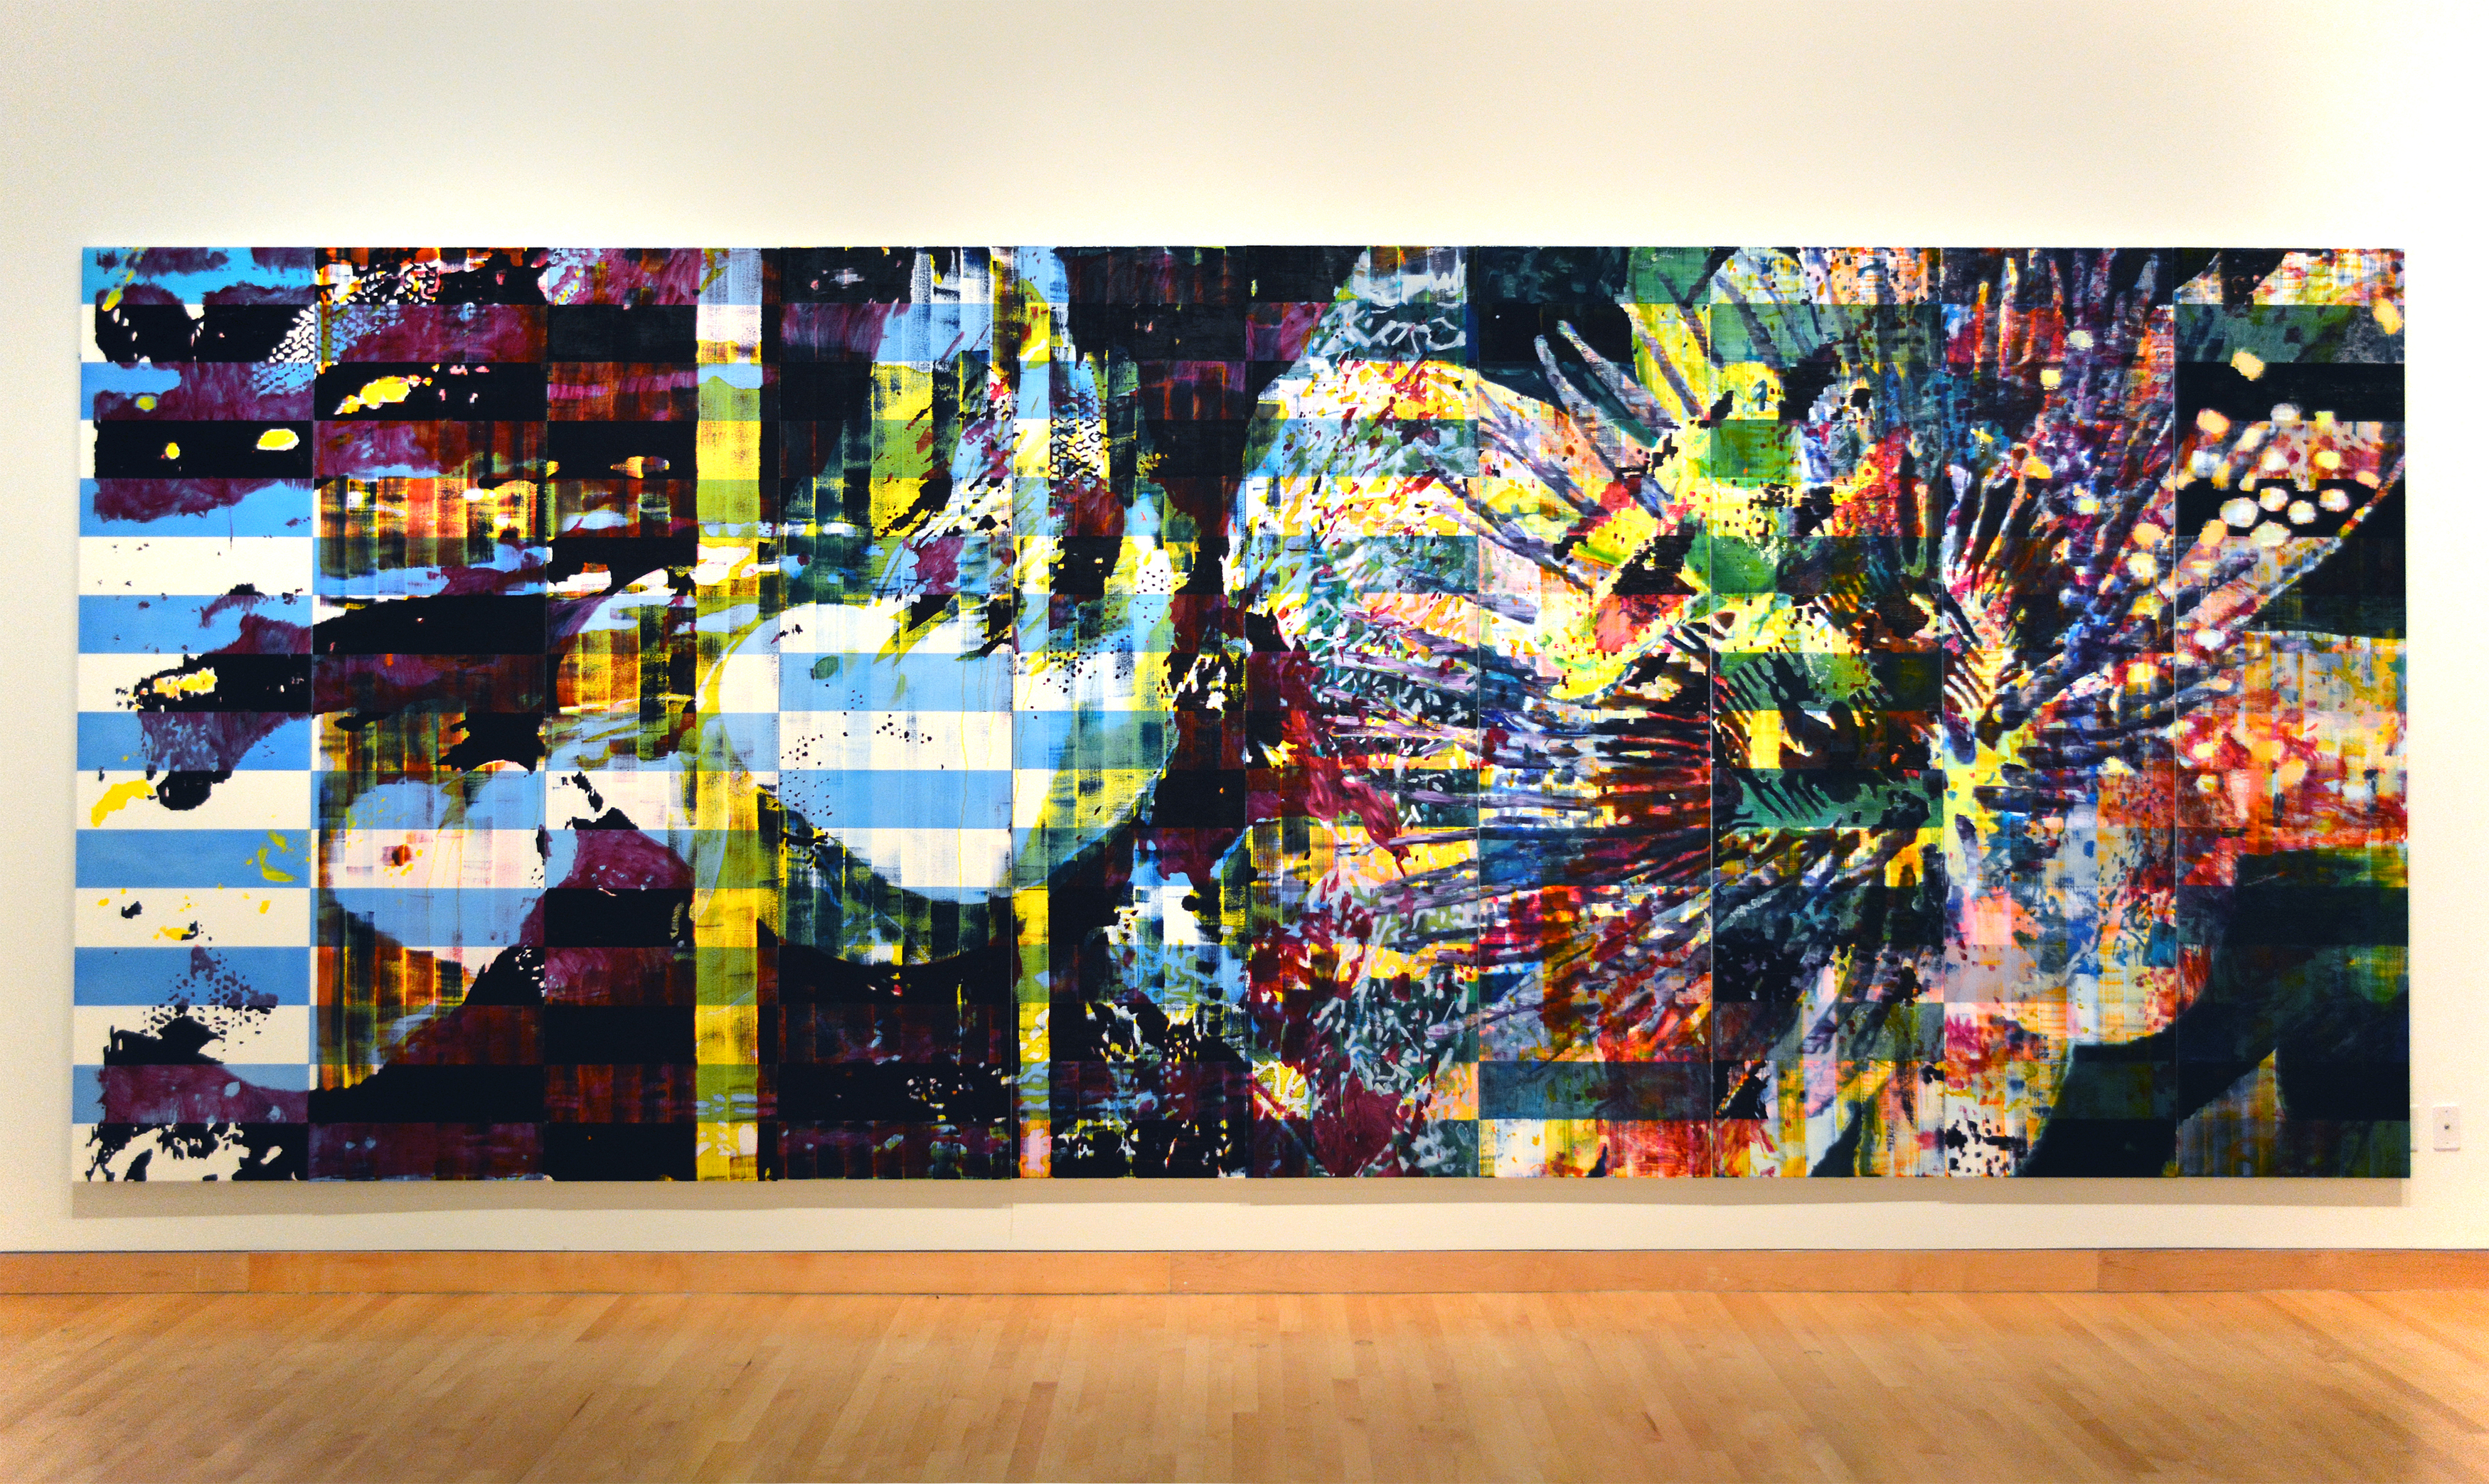 """Jered Sprecher, A Plane is a Pocket in the Corners of the Mind, 96"""" x 240"""", oil on canvas, 2014. (Courtesy of Artist)"""